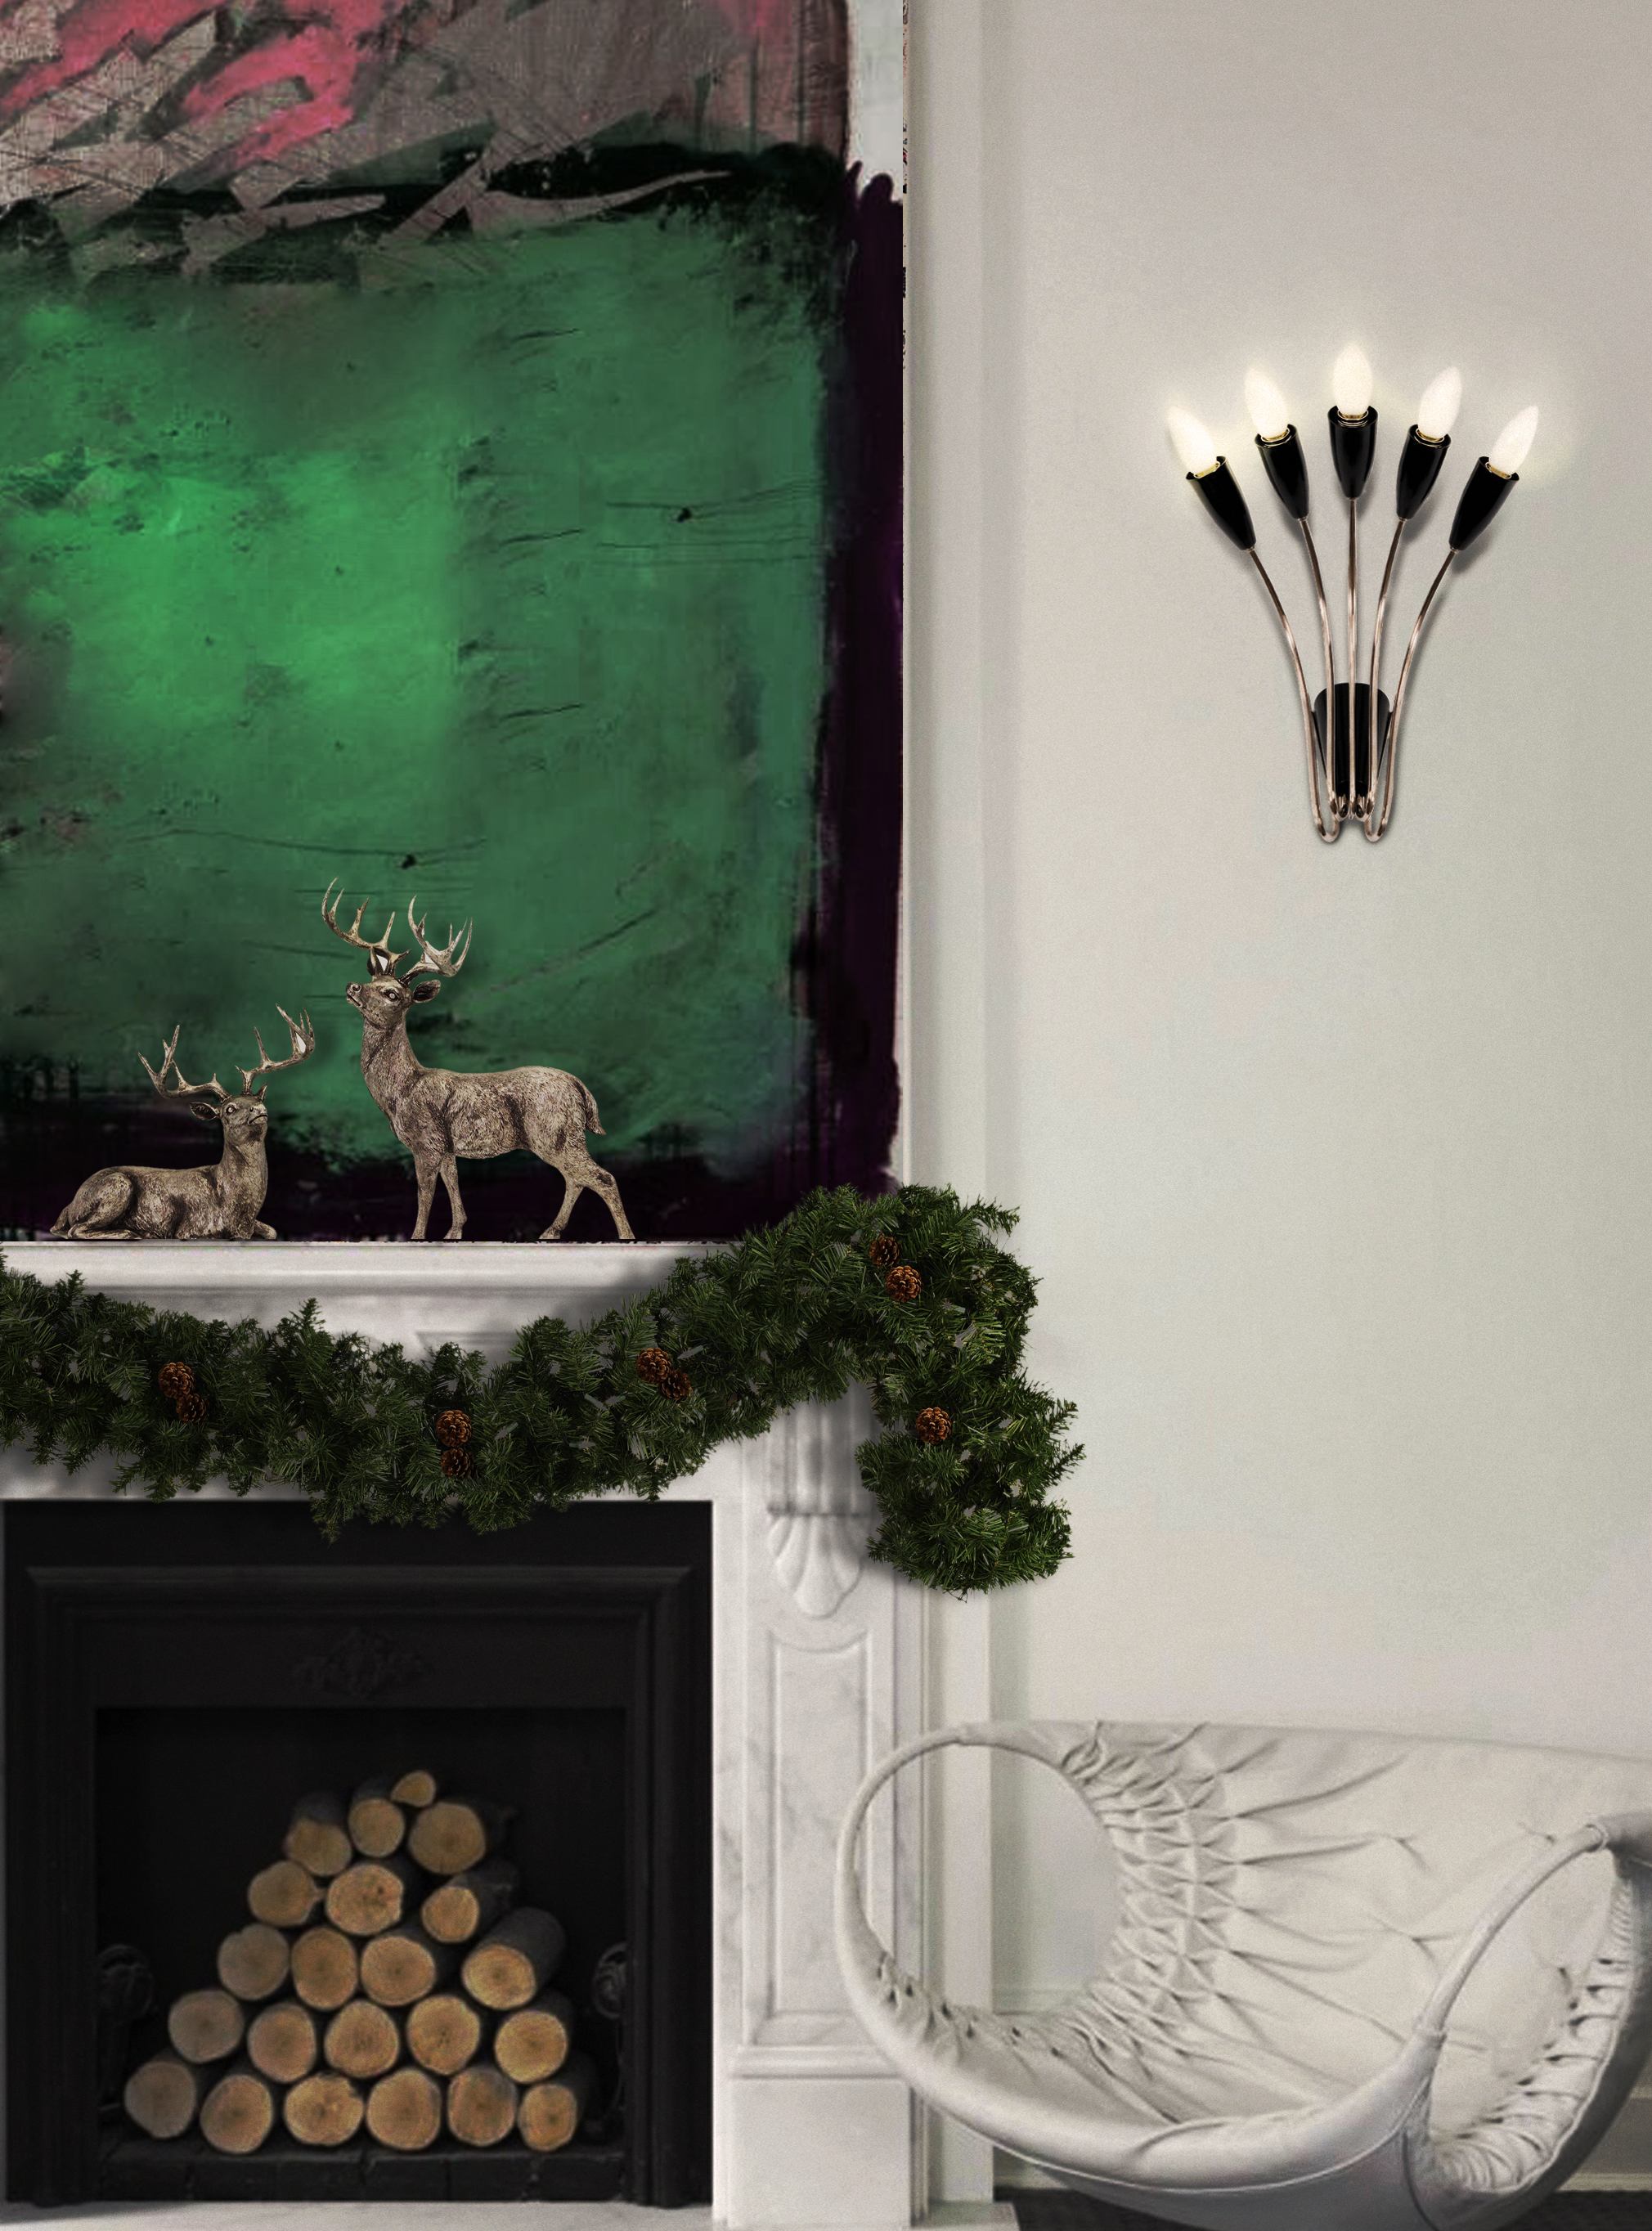 This Christmas Season Get Decorative Wall Lights for Your Living Room decorative wall lights This Christmas Season Get Decorative Wall Lights for Your Living Room This Christmas Season Get Decorative Wall Lights for Your Living Room 1